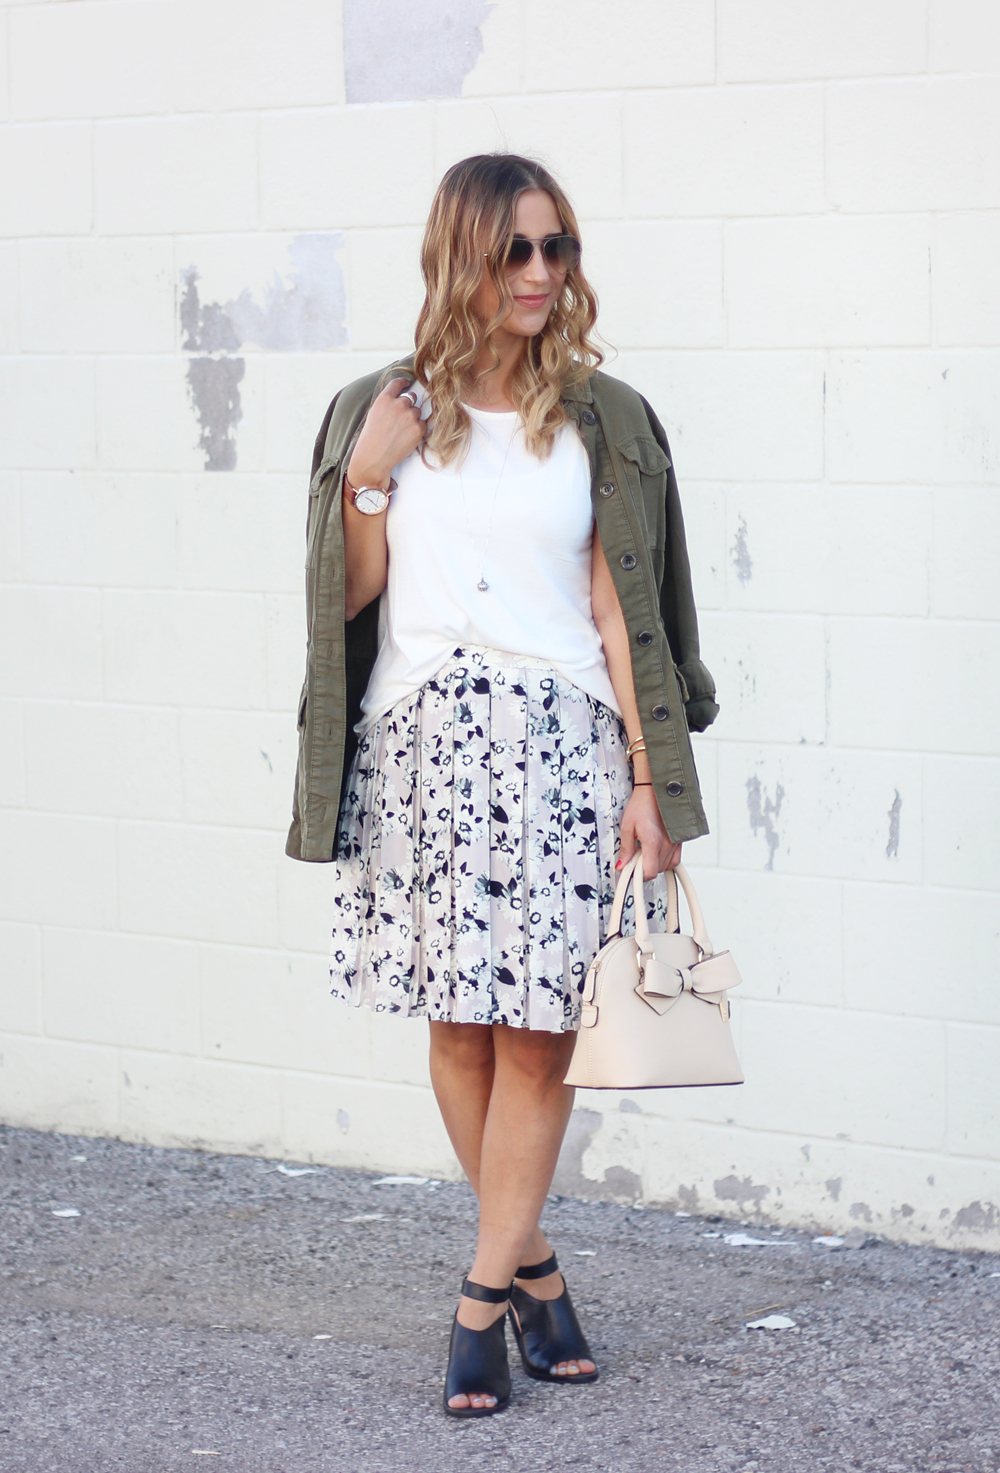 Outfit Inspiration - Transition summer wardrobe to fall